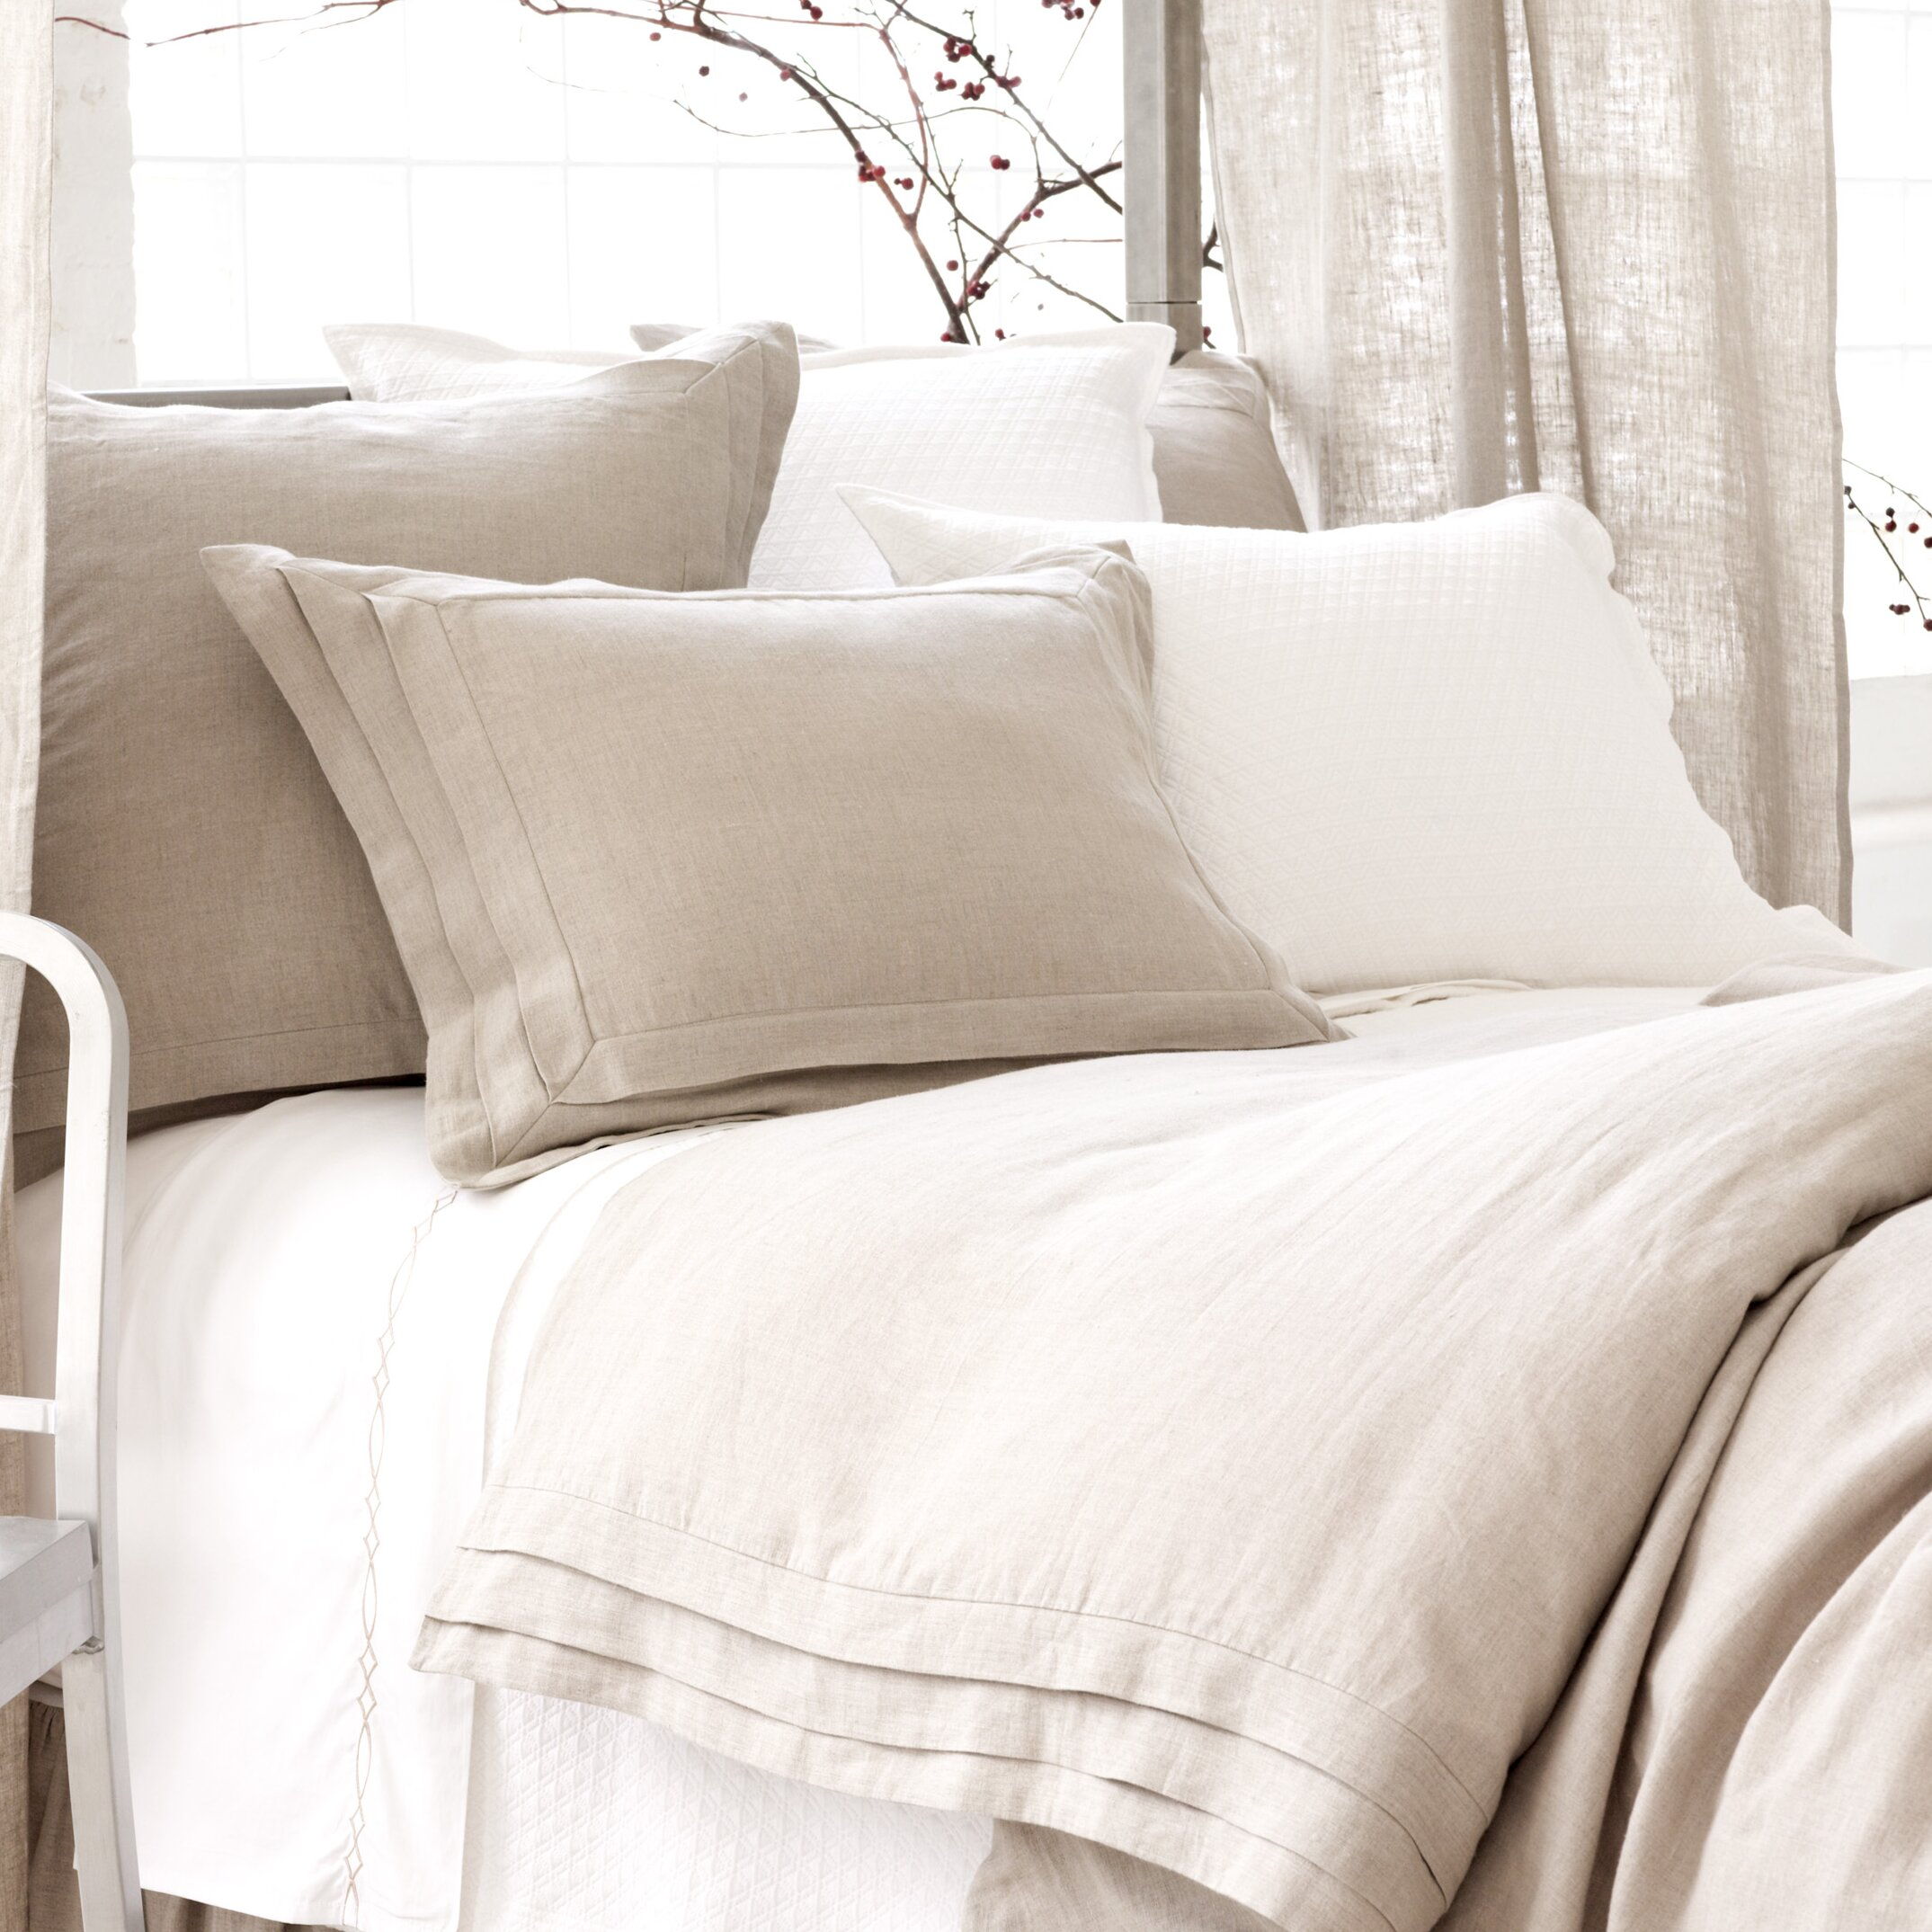 pine cone hill natural pleated linen duvet cover. Black Bedroom Furniture Sets. Home Design Ideas